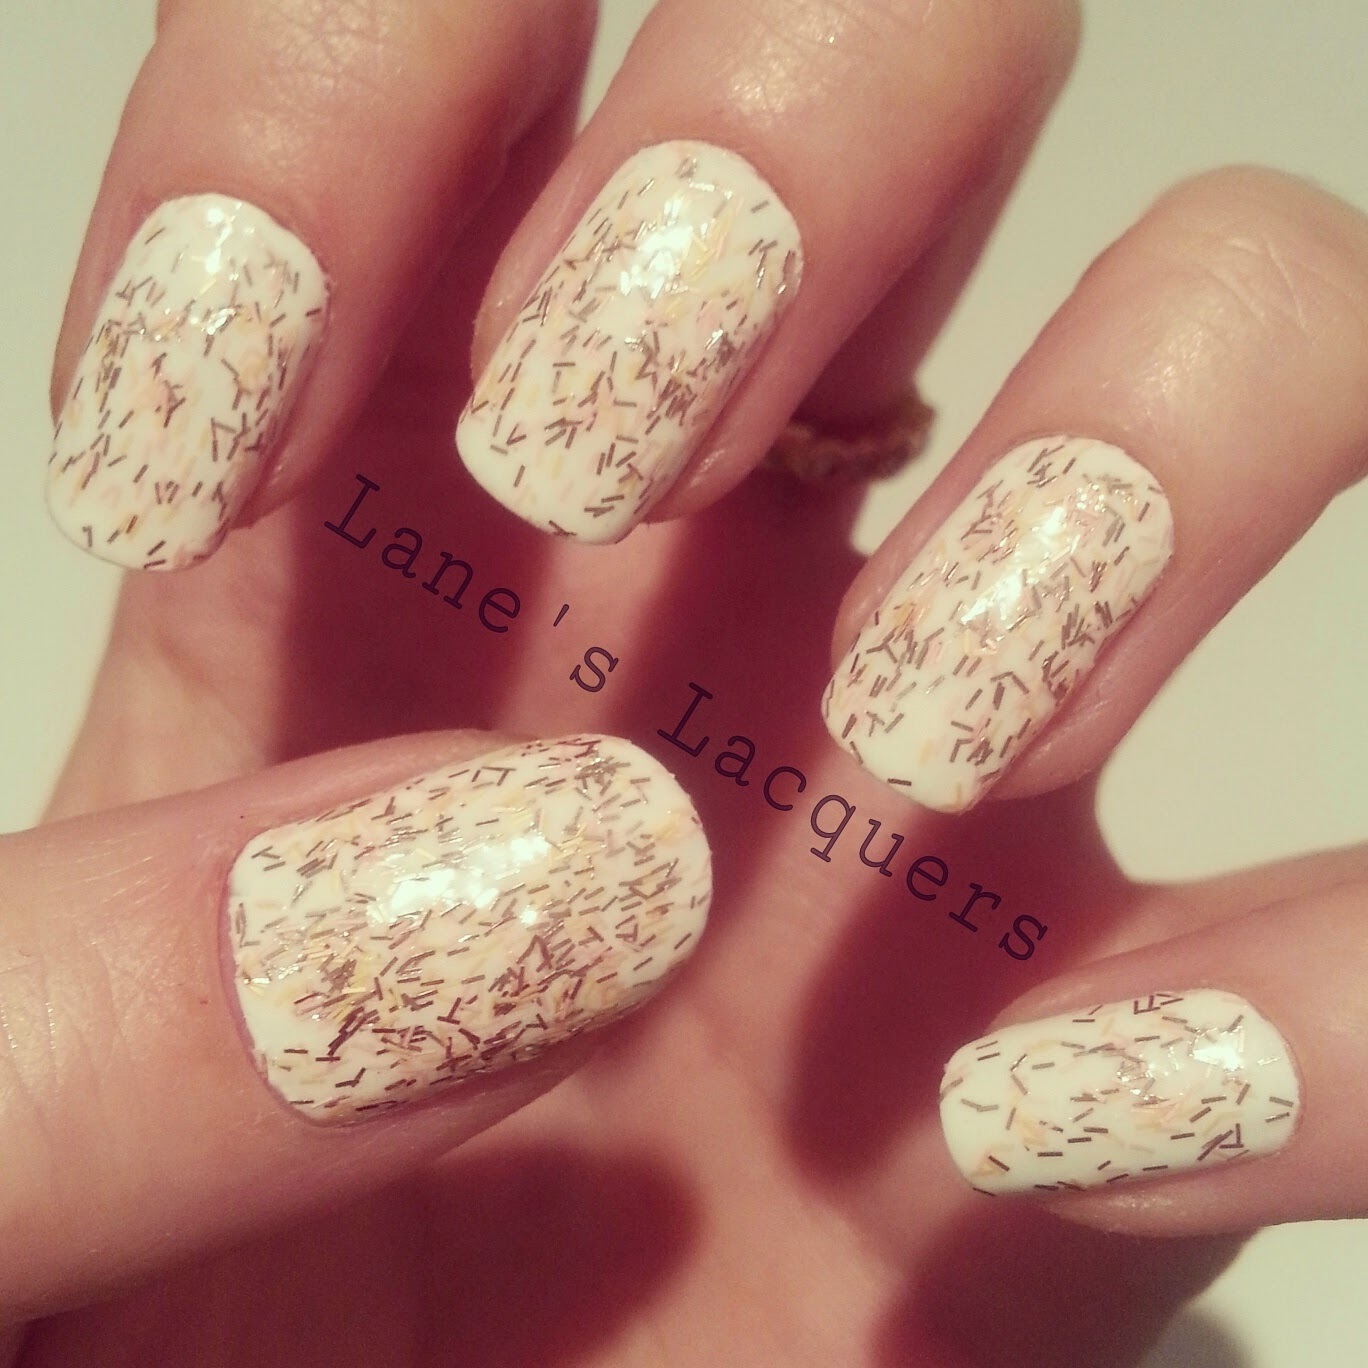 ciate-mini-mani-manor-sloaney-sweetie-white-glitter-nails (1)